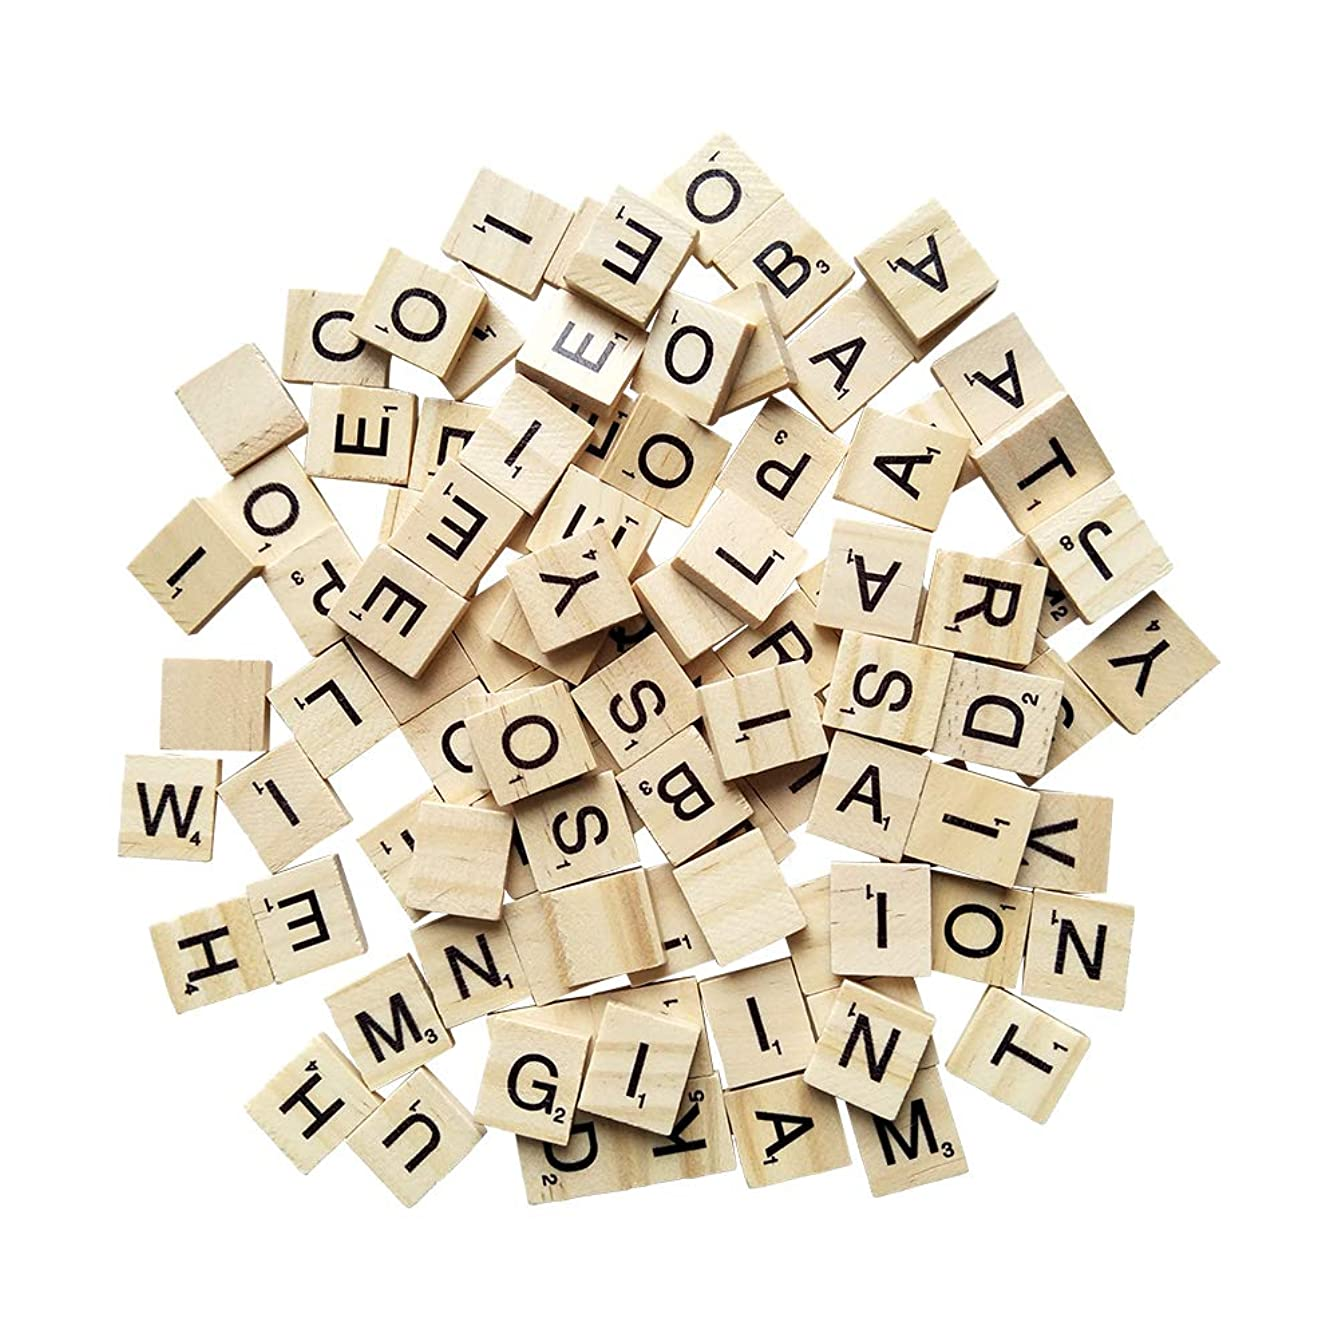 YH Poker 200 Wood Scrabble Tiles,Scrabble Letters for Crafts - DIY Wood Gift Decoration - Making Alphabet Coasters and Scrabble Crossword Game